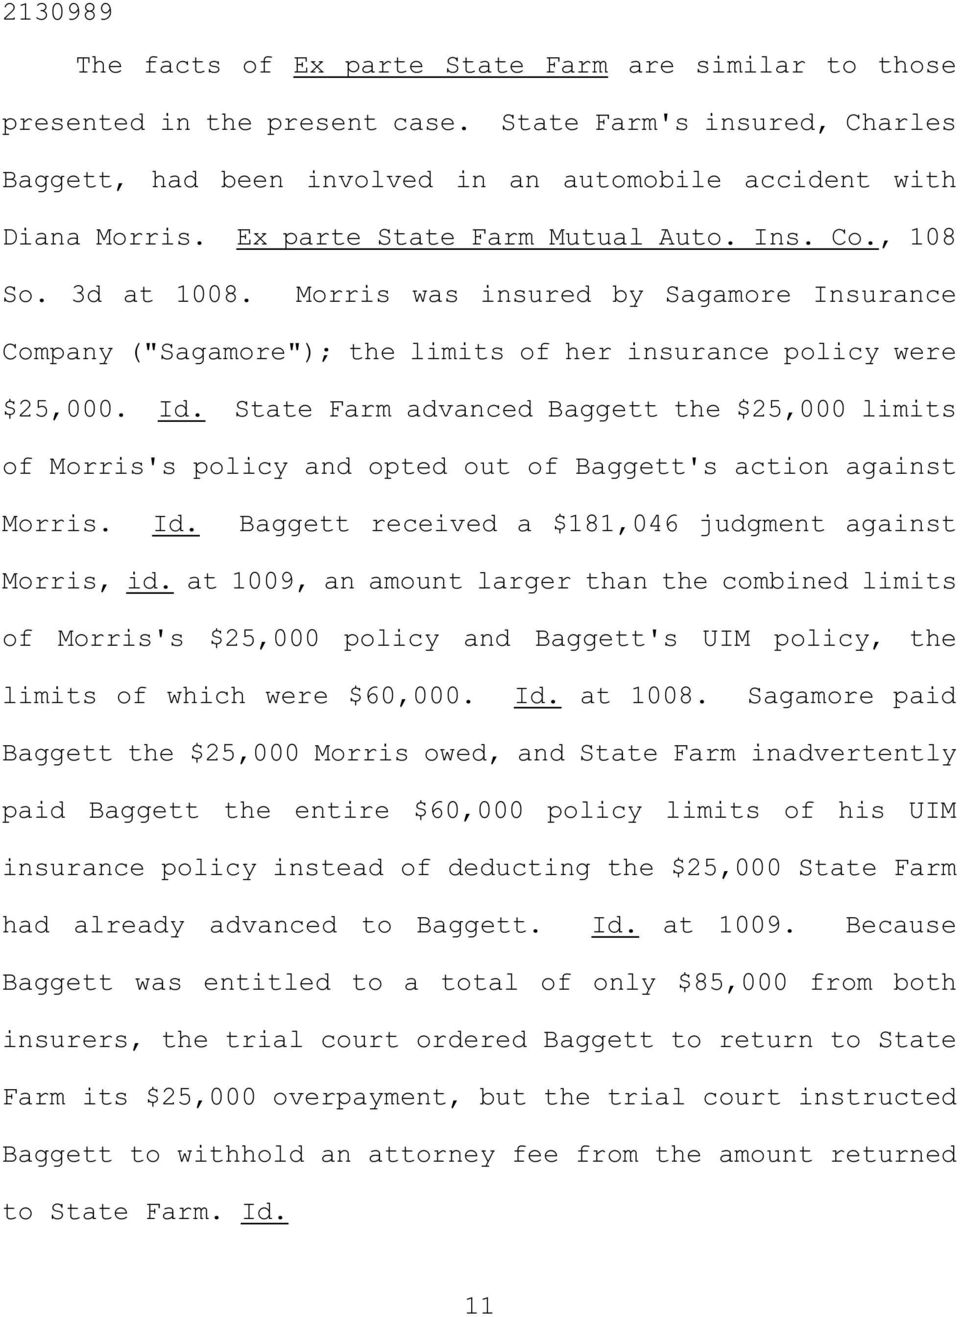 State Farm advanced Baggett the $25,000 limits of Morris's policy and opted out of Baggett's action against Morris. Id. Baggett received a $181,046 judgment against Morris, id.